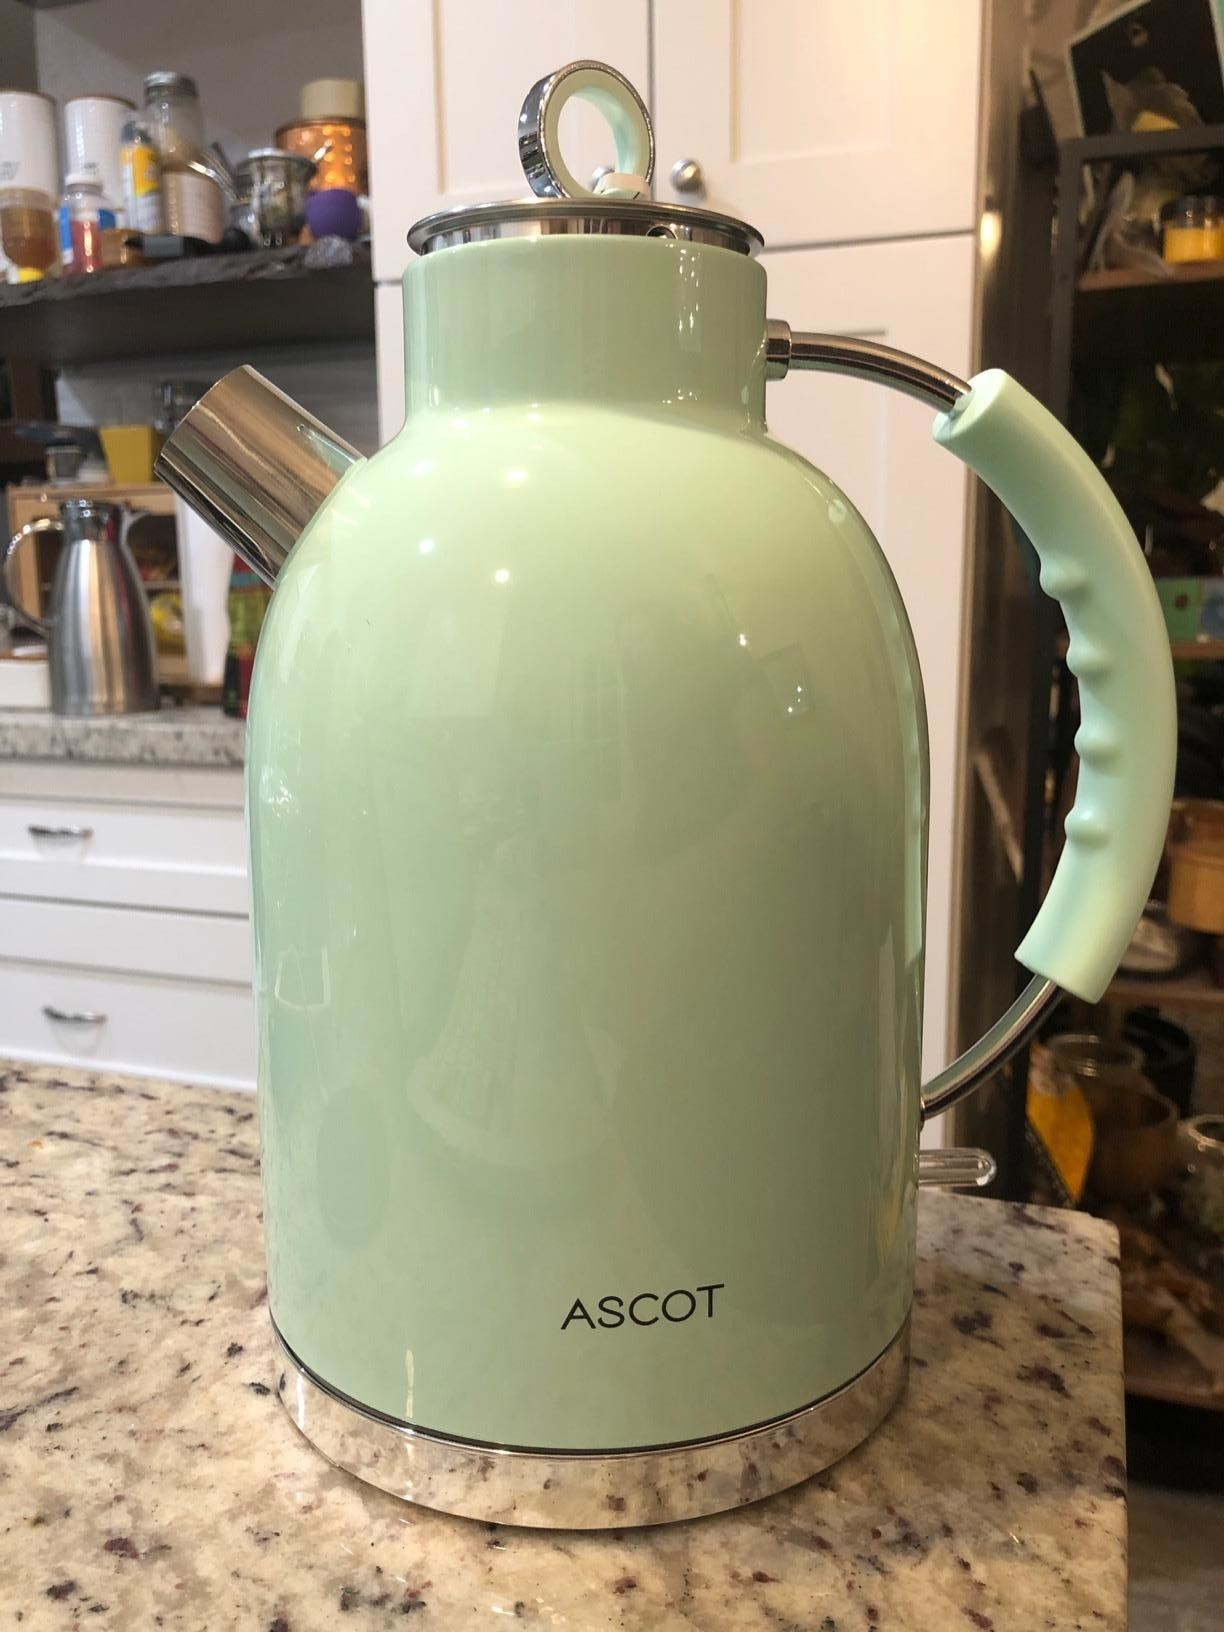 reviewer image of the mint kettle on a countertop